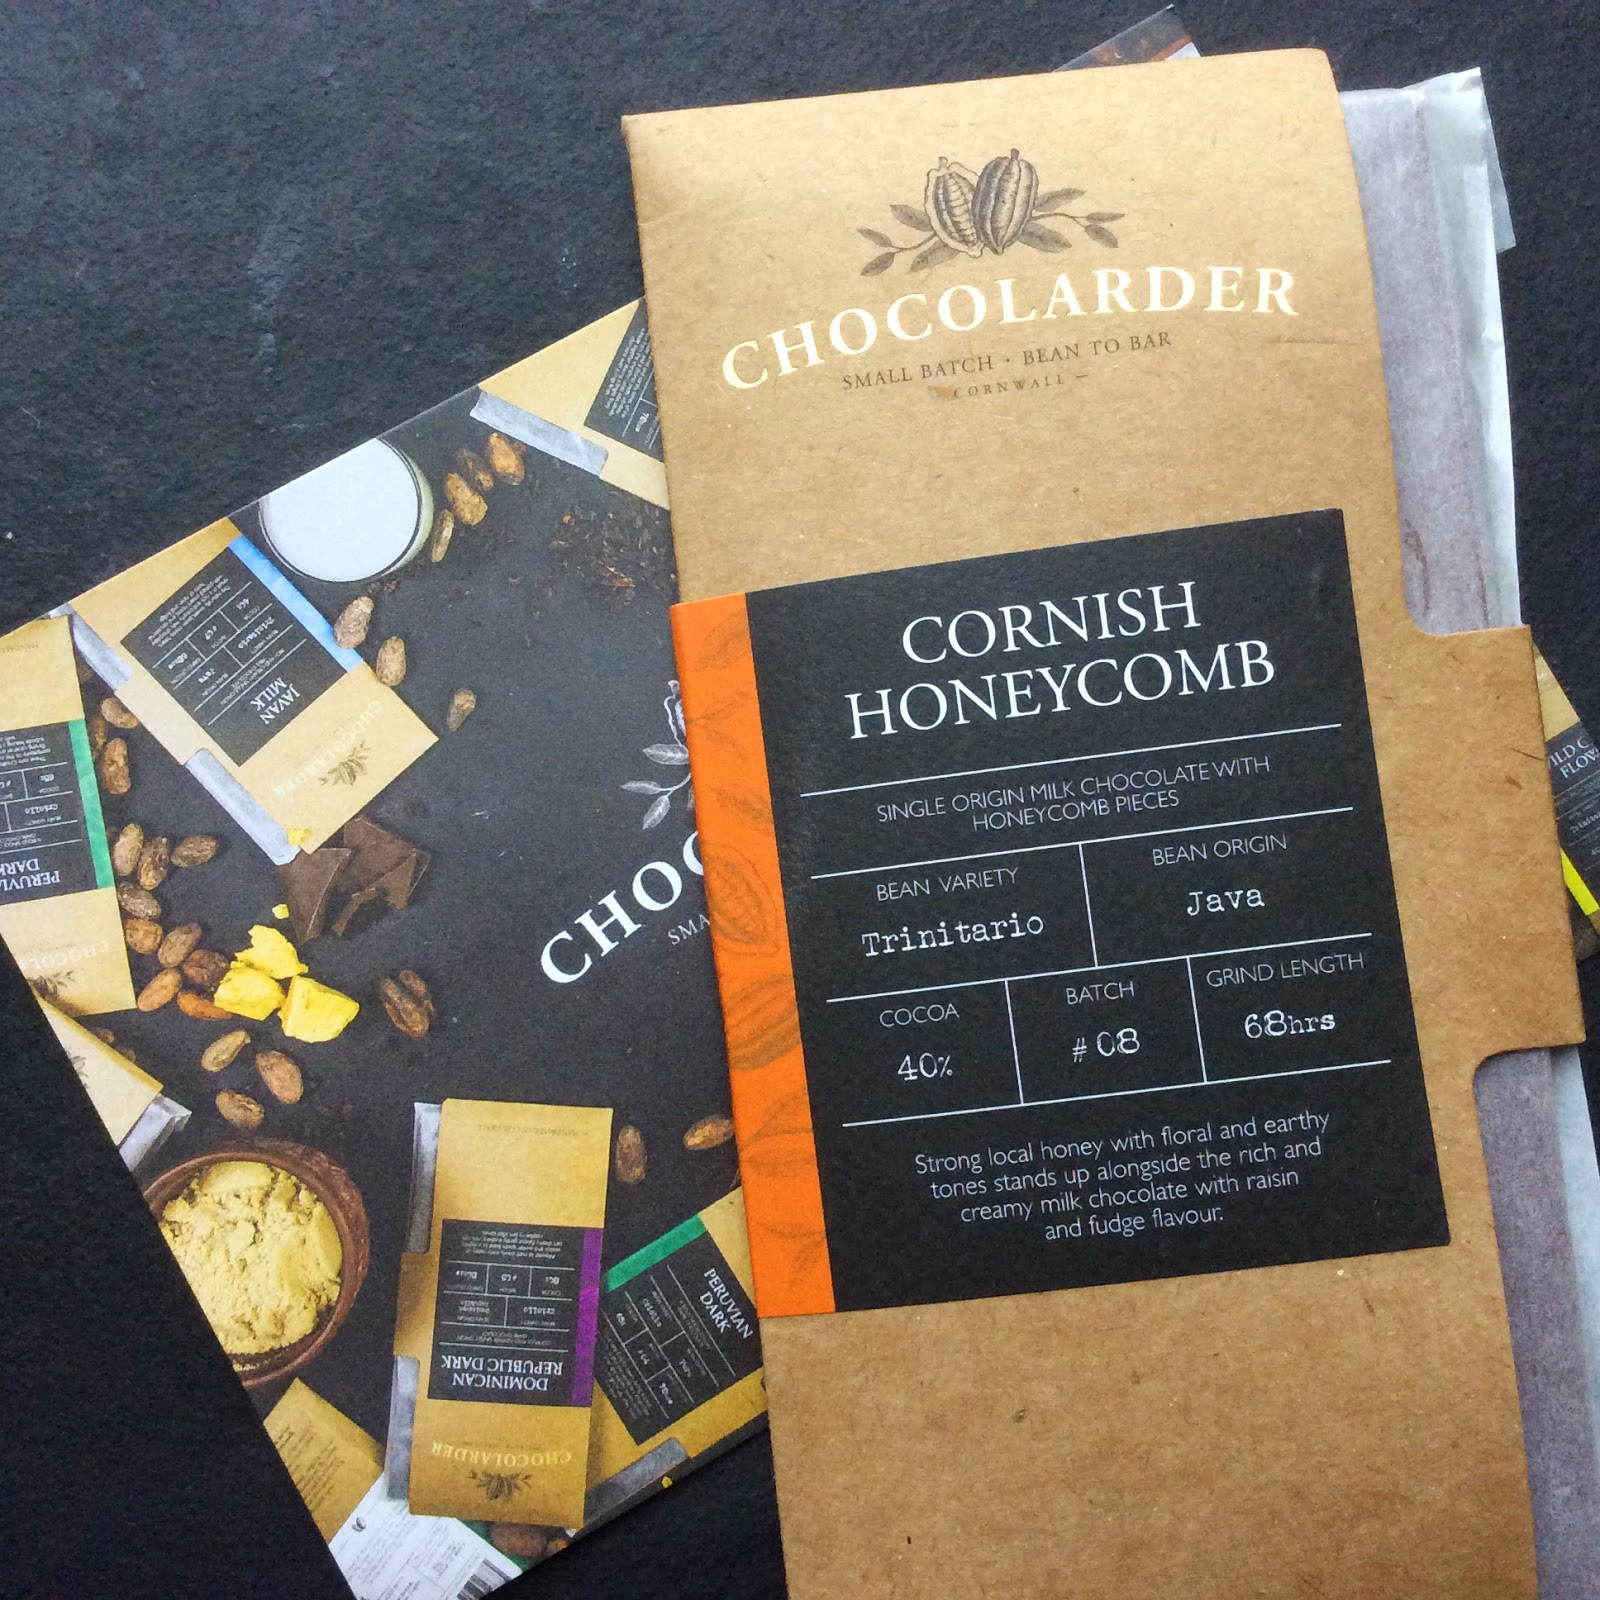 Cornish Honeycomb, Trinitario, Java